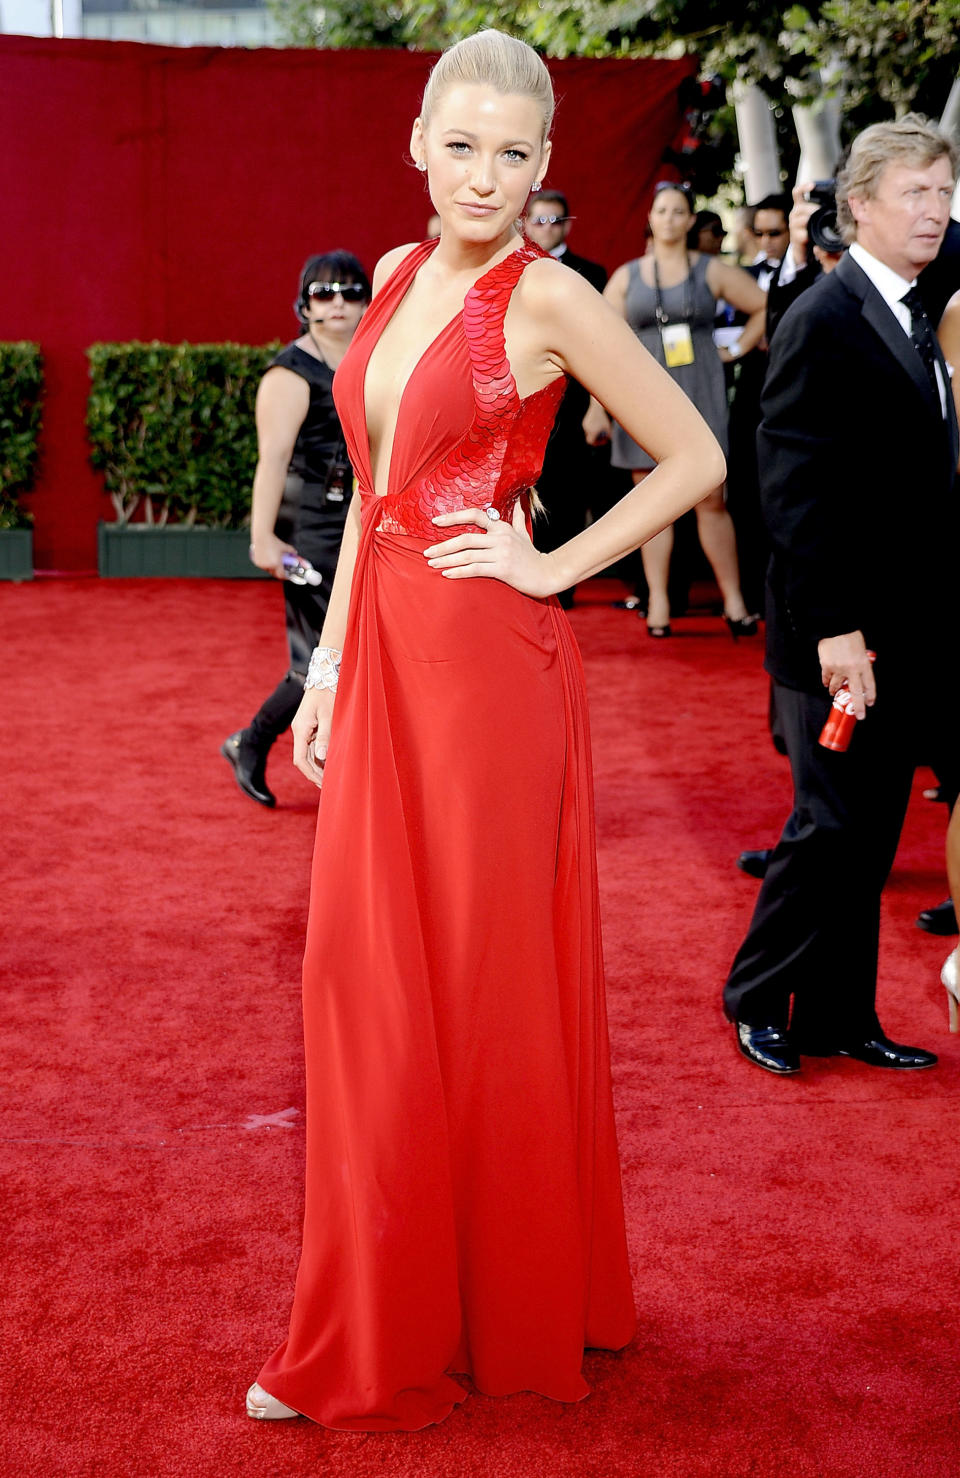 <p>Blake Lively turned heads at the 2009 Emmy Awards in a red-hot Versace gown that remains one of her best red carpet looks of all time. (Image via Getty Images)</p>